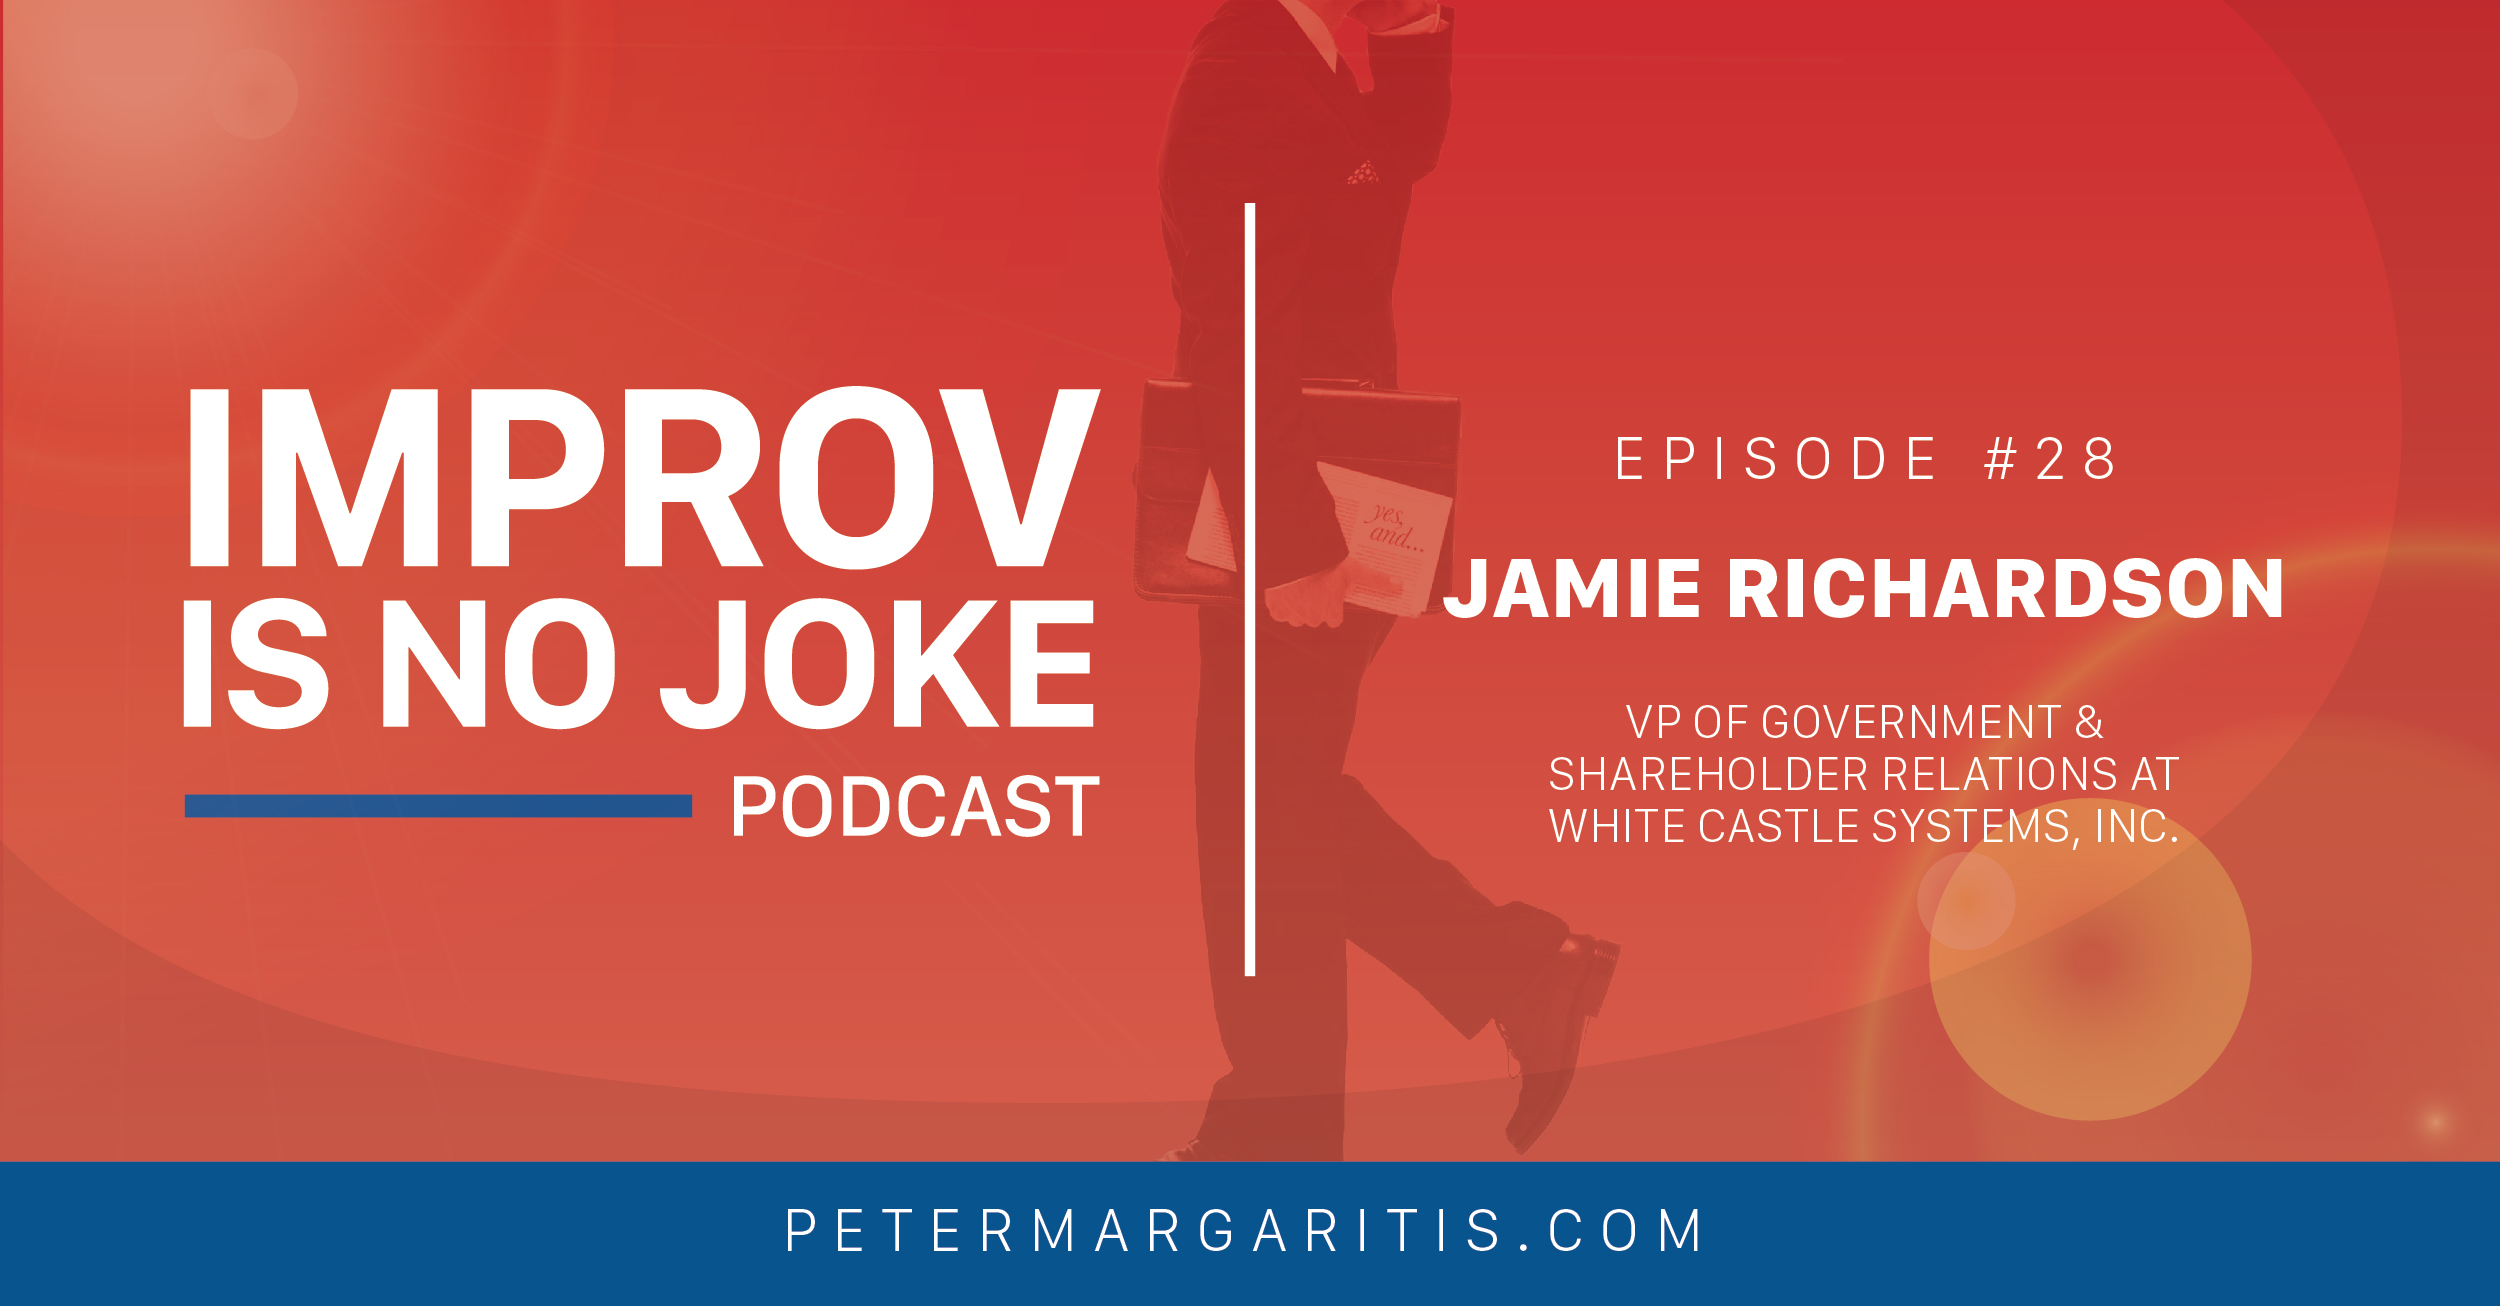 Ep 28 Jamie Richardson VP Of Government And Shareholder Relations At White Castle Systems Inc